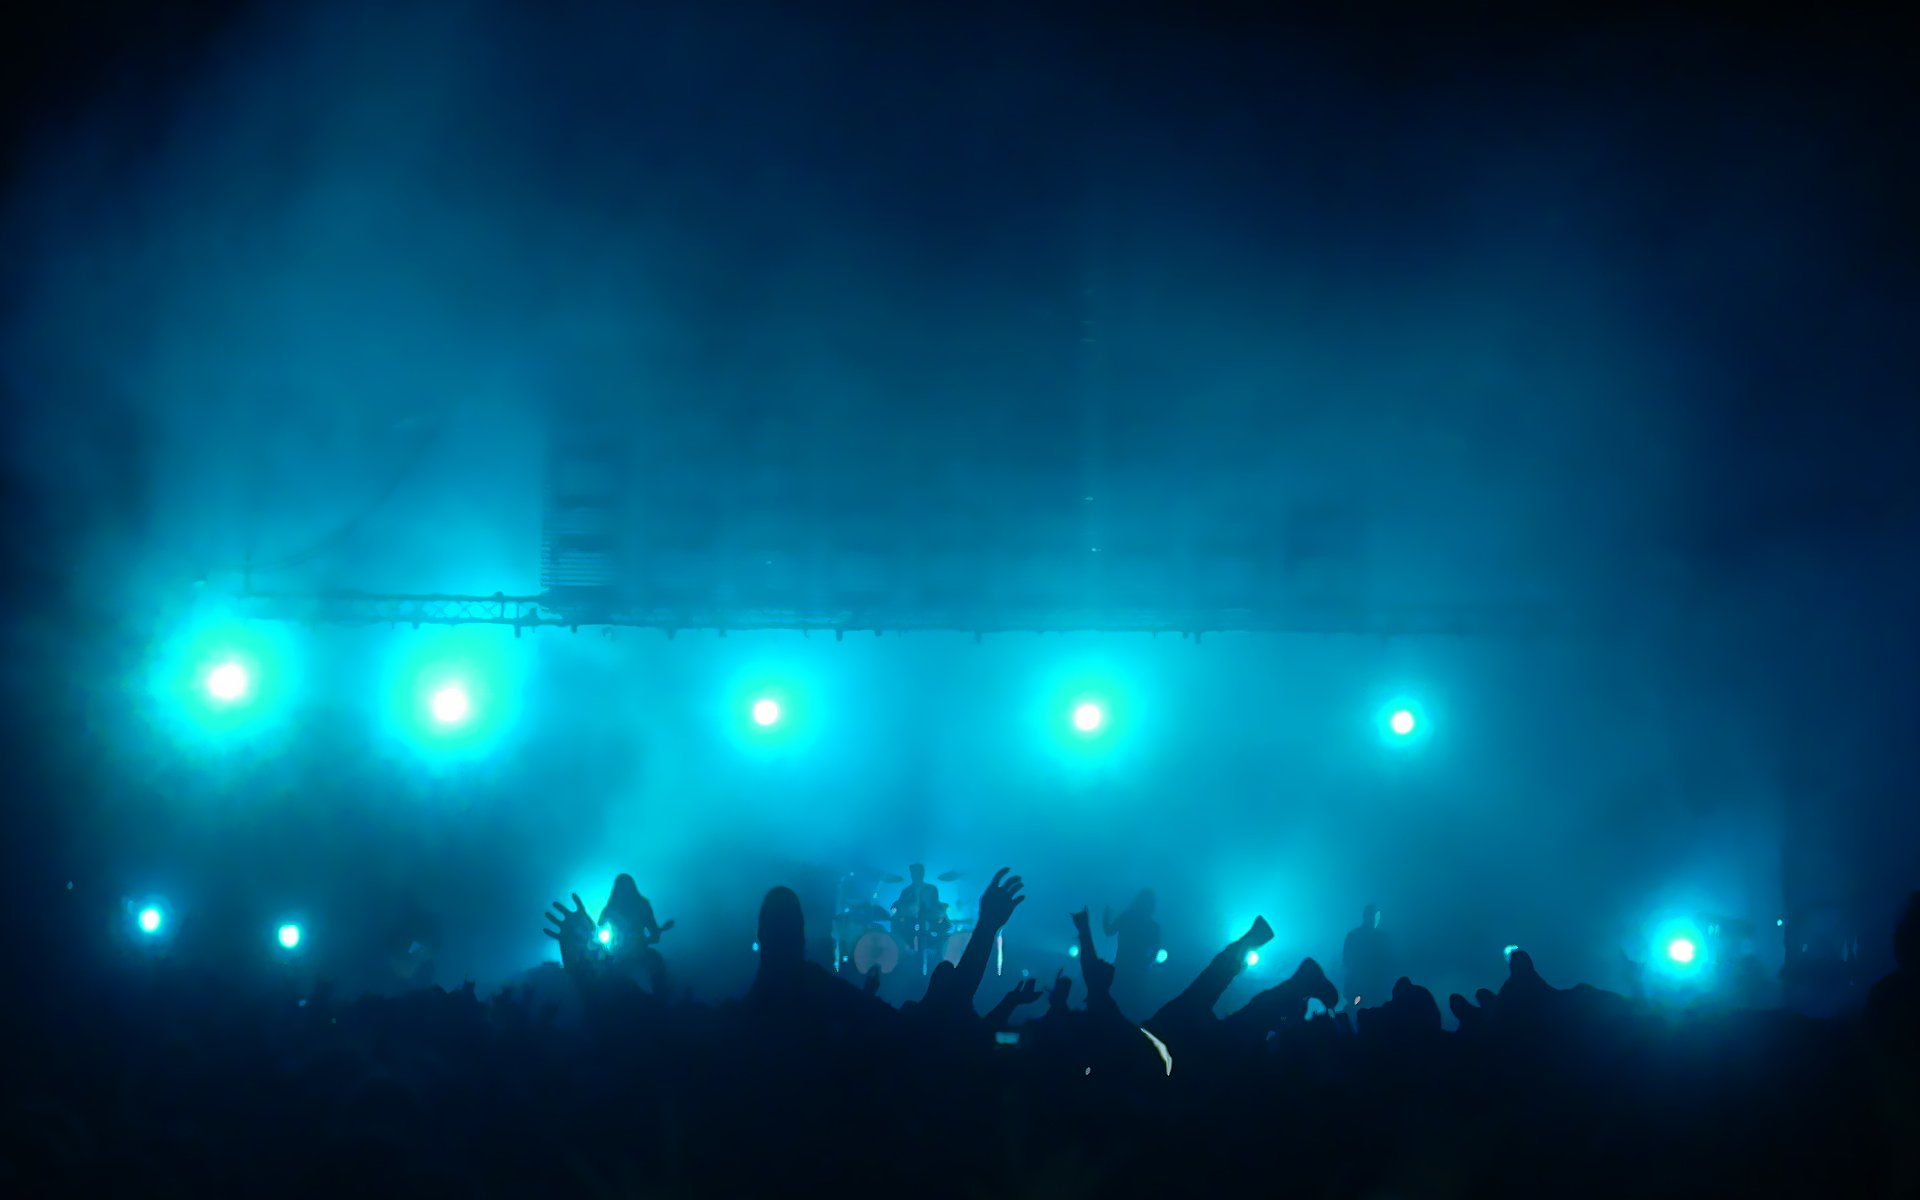 Concert Stage Backgrounds Stage widescreen wallpaper 1920x1200